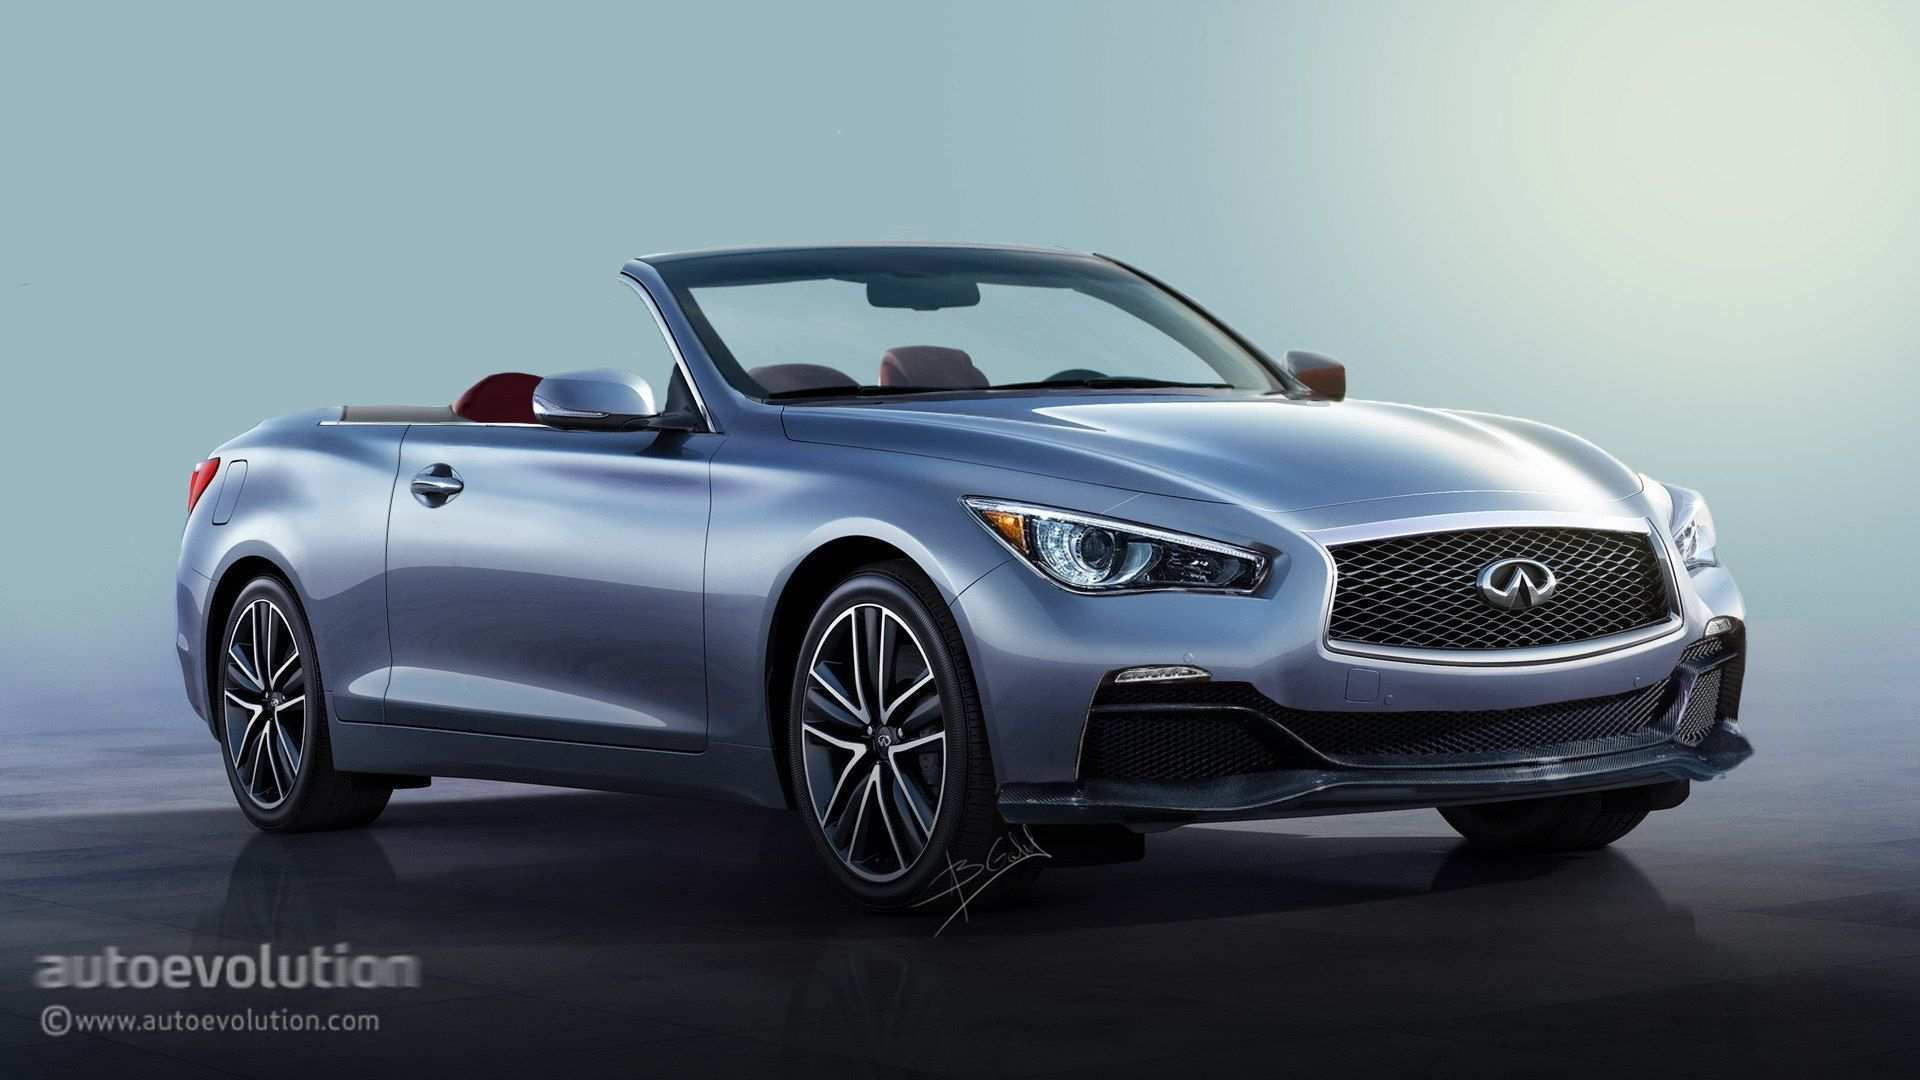 68 The 2020 Infiniti Q60 Exterior Date Wallpaper for 2020 Infiniti Q60 Exterior Date